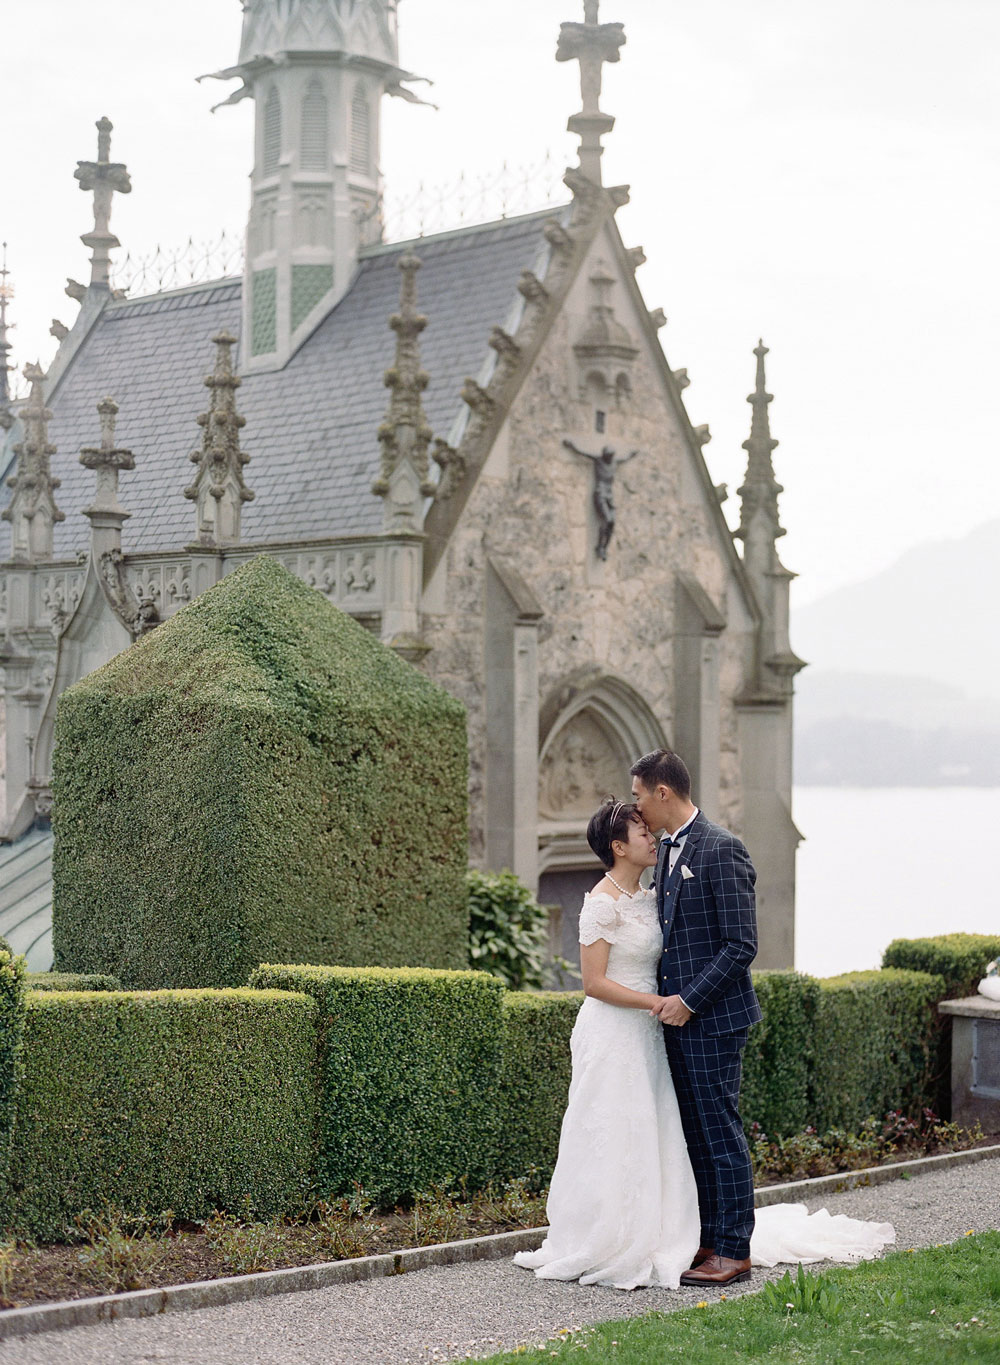 Minnie-William-prewedding-pictures-Interlaken-Luzern-3.jpg